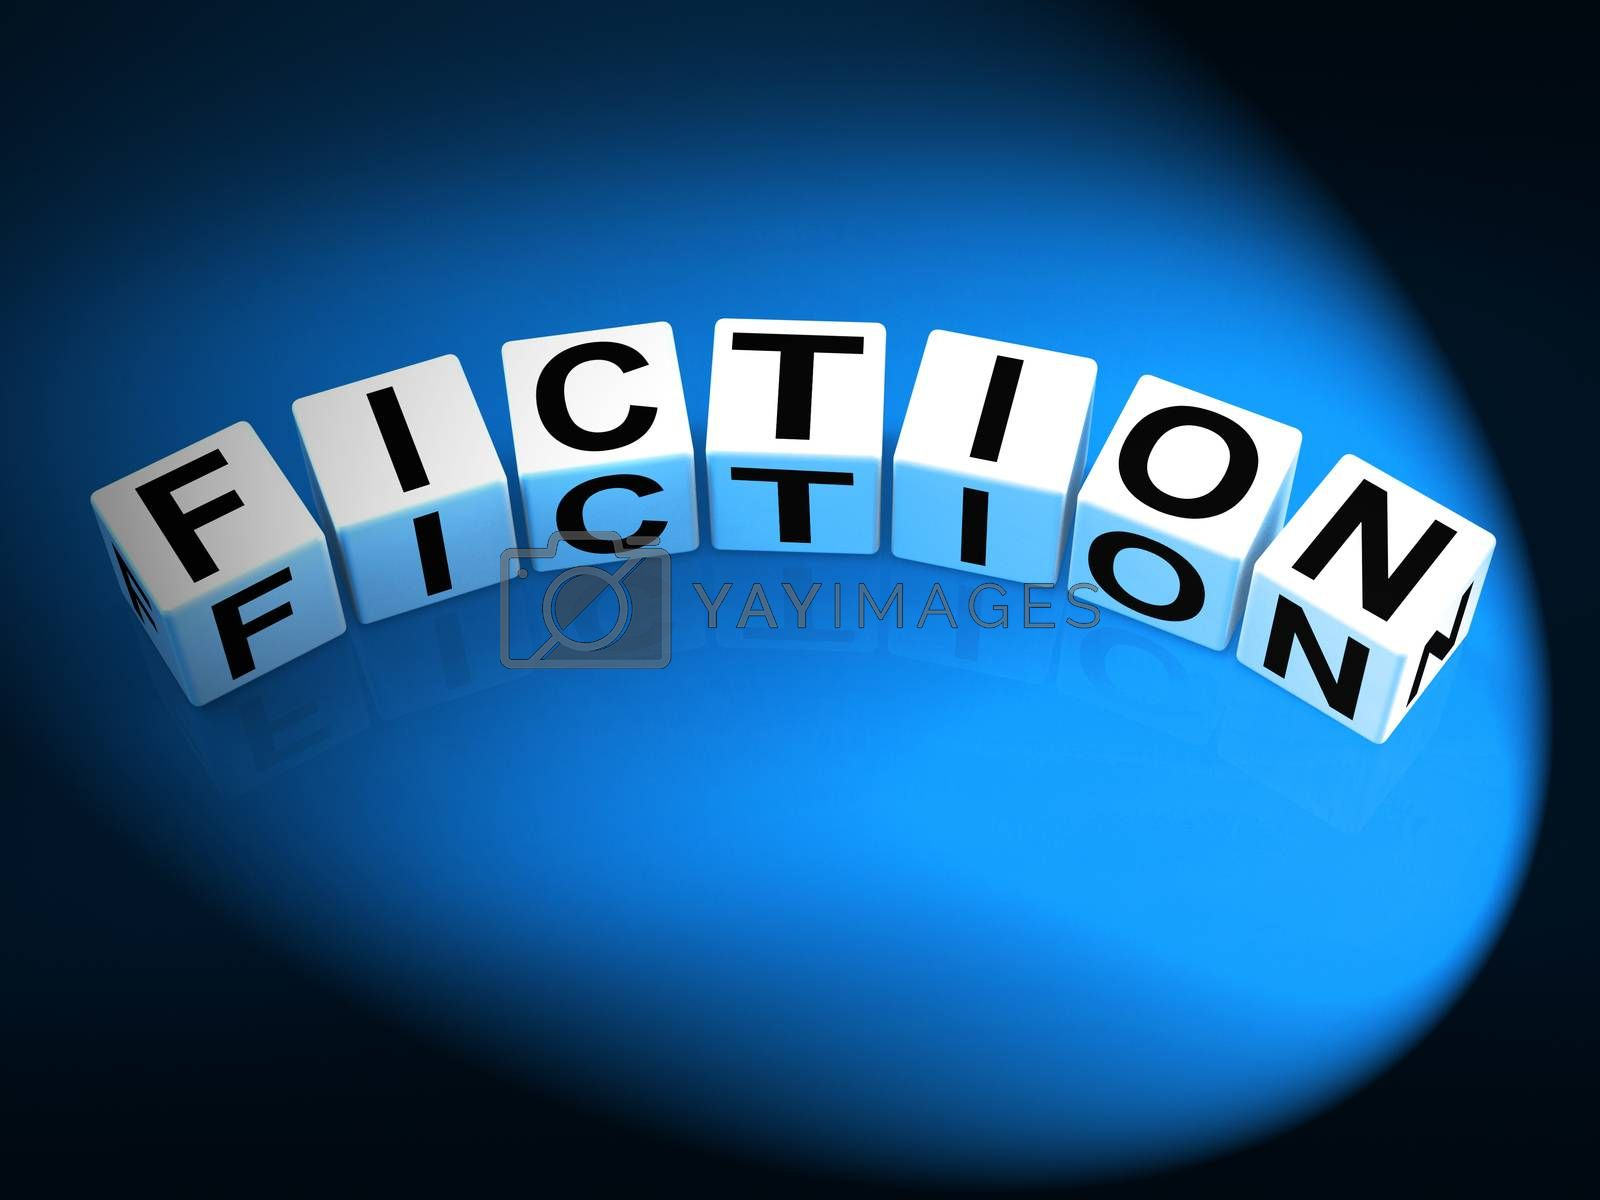 Fiction Dice Show Fictional Tale Narrative or Novel by stuartmiles